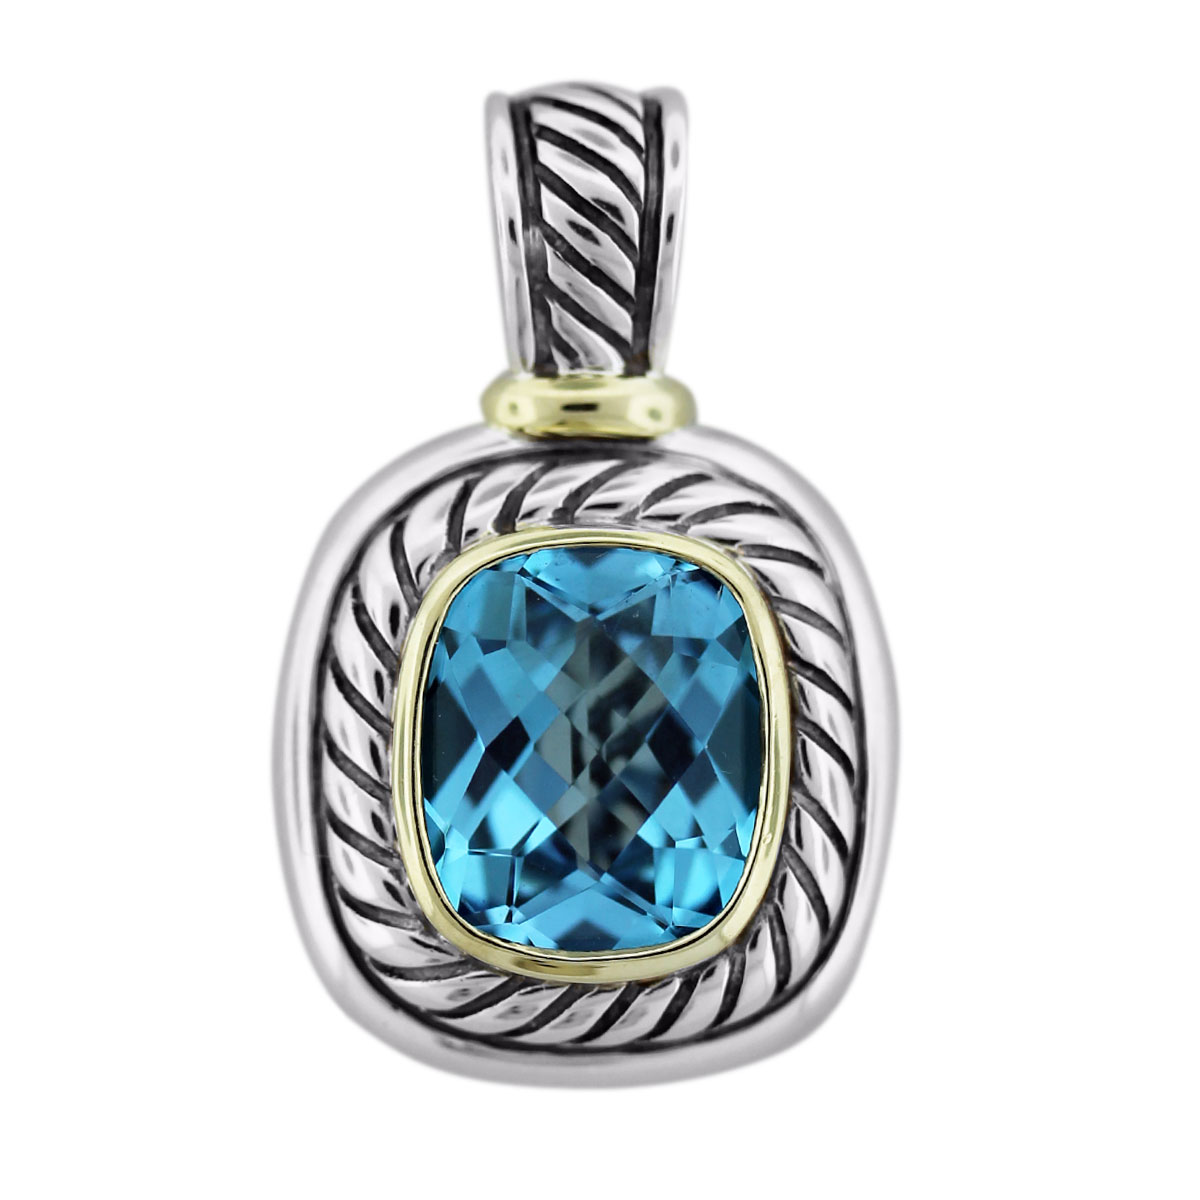 David Yurman Blue Topaz Albion Pendant